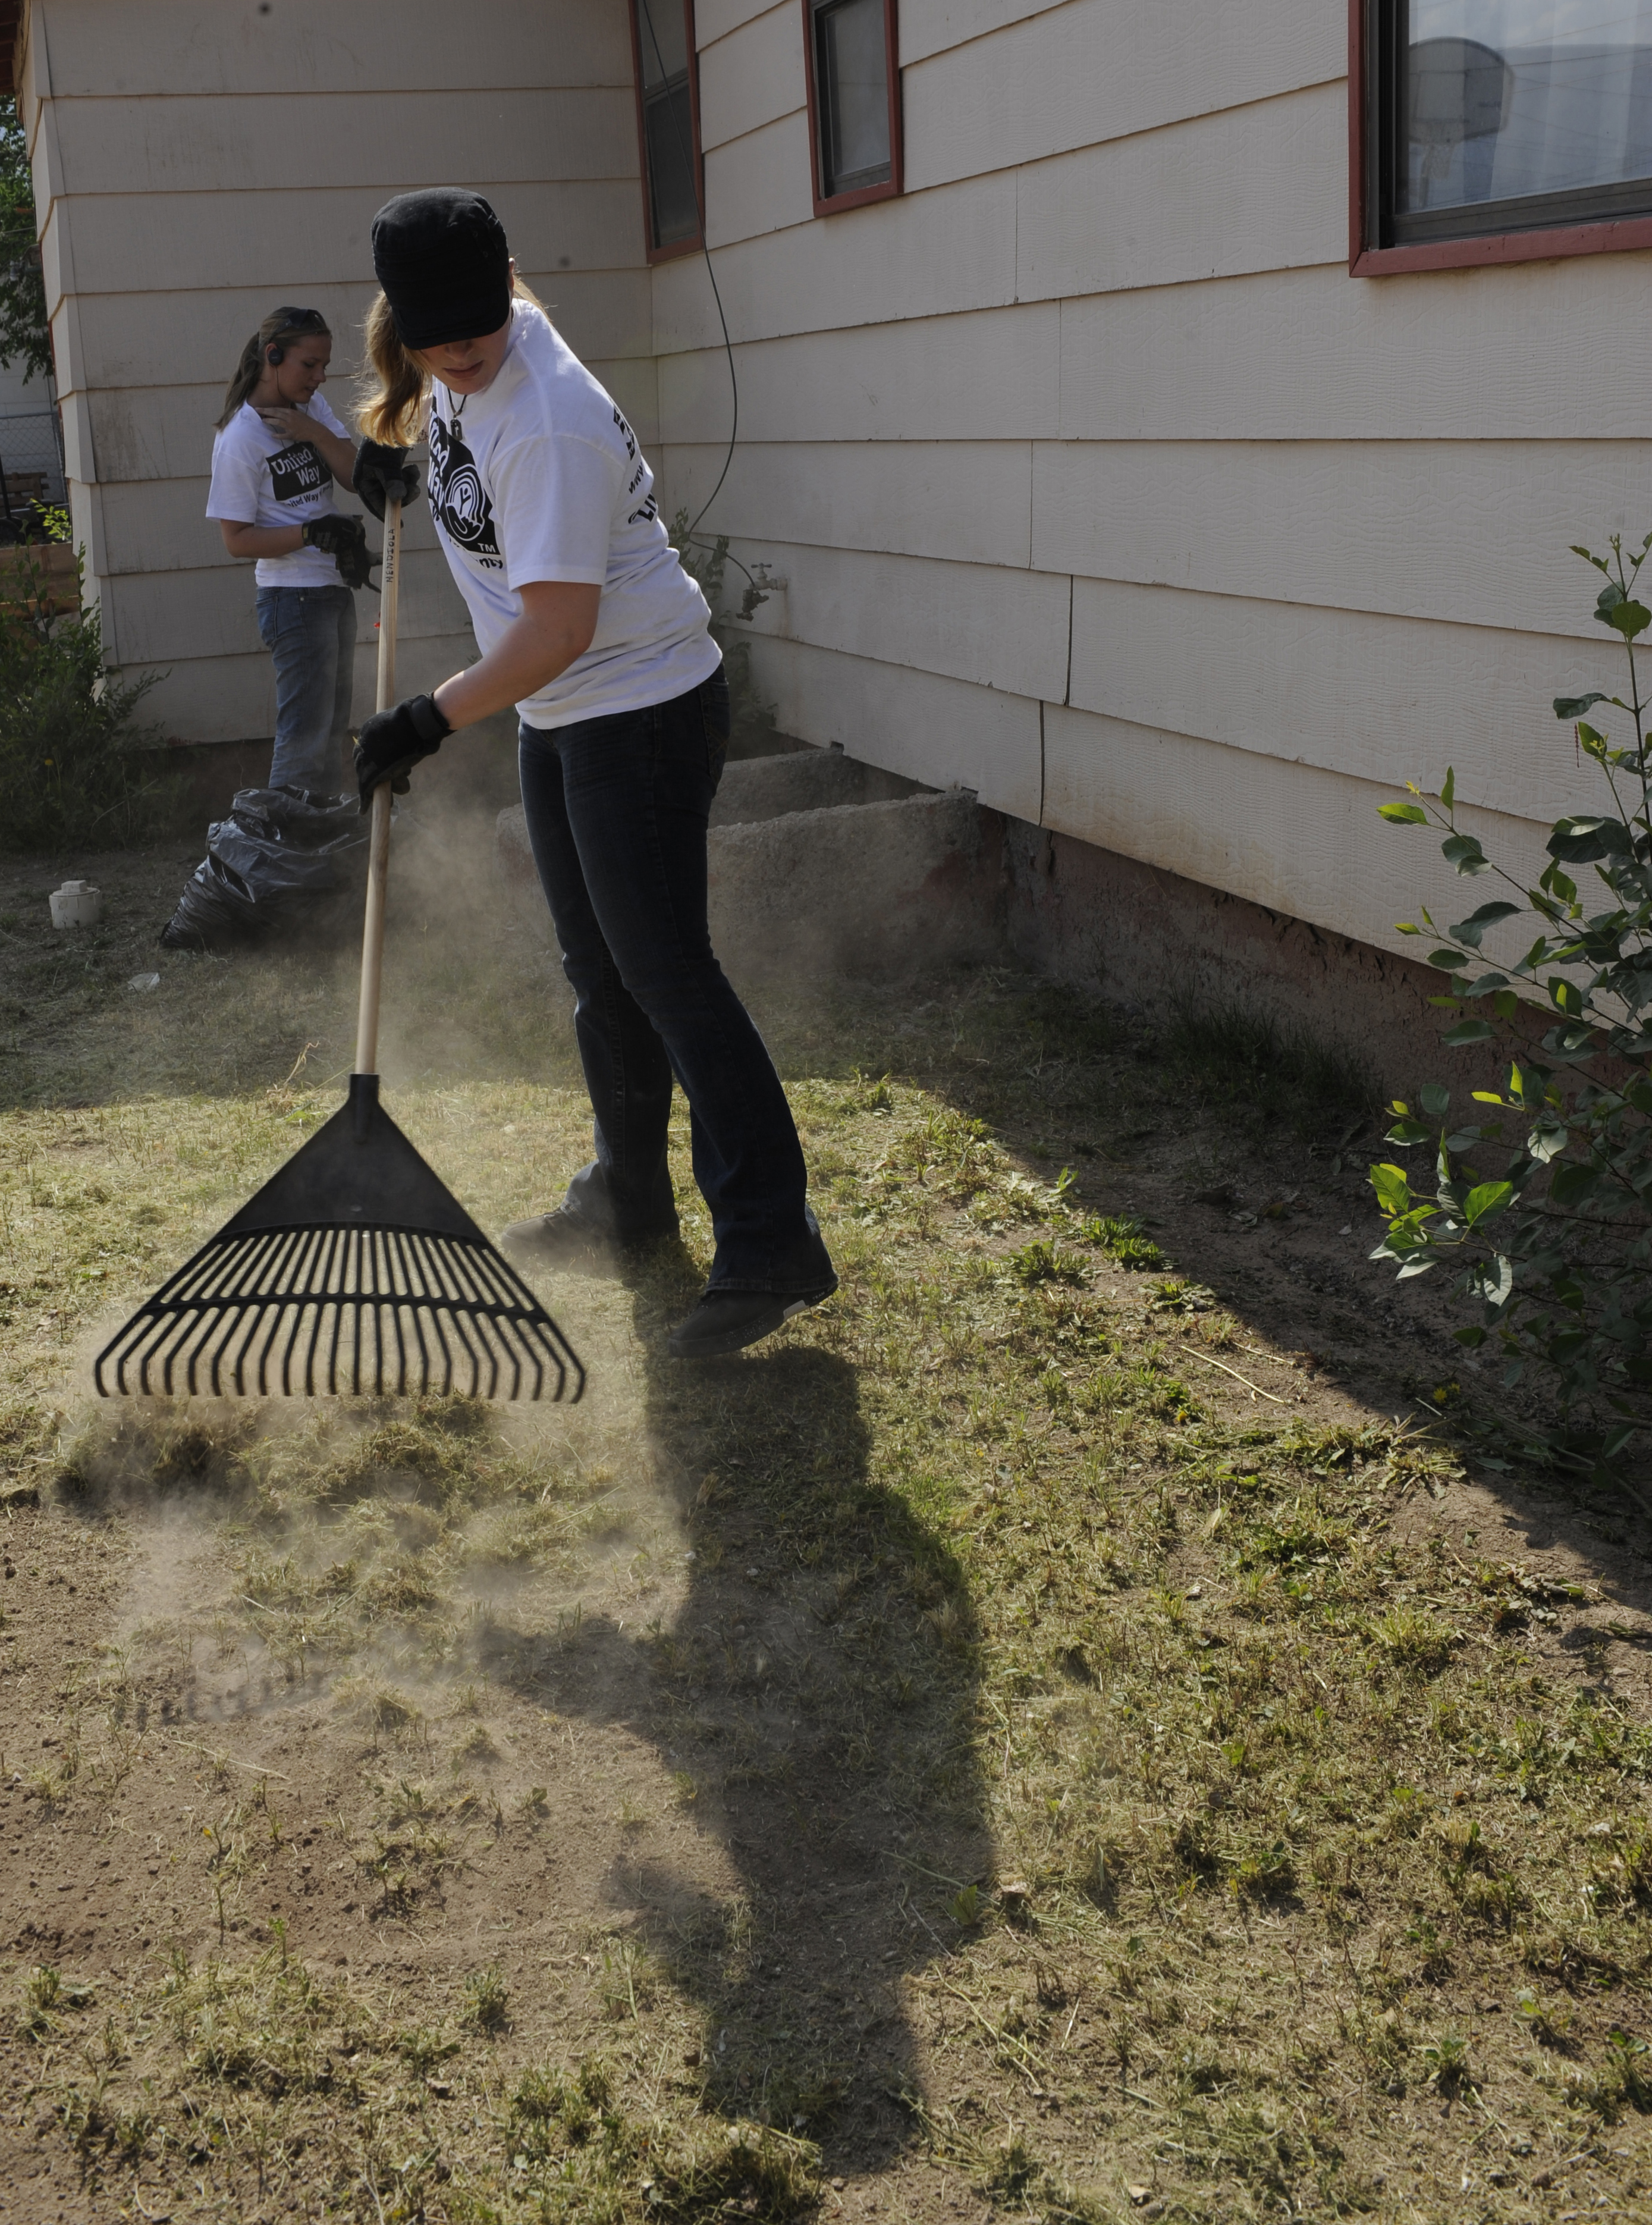 keep home and surroundings clean to prevent chikungunya